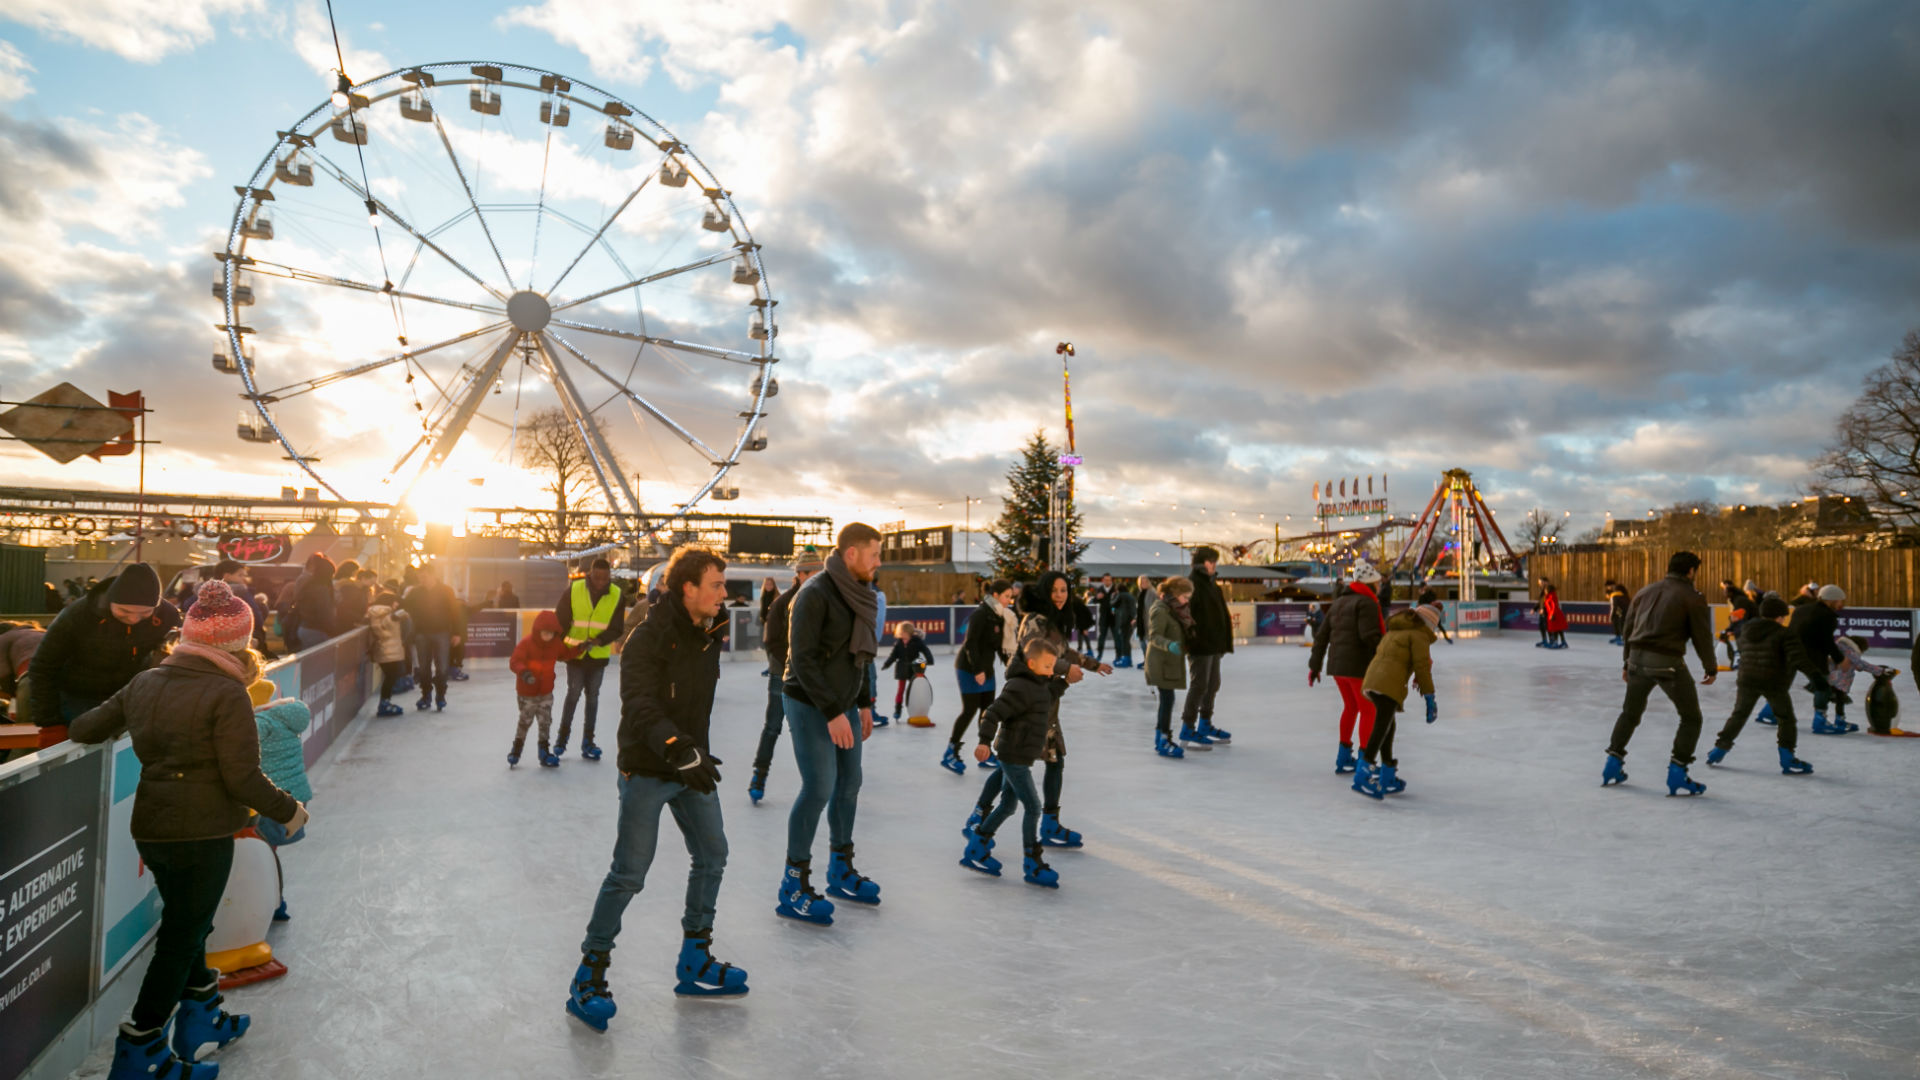 People glide around the ice rink at Winterville